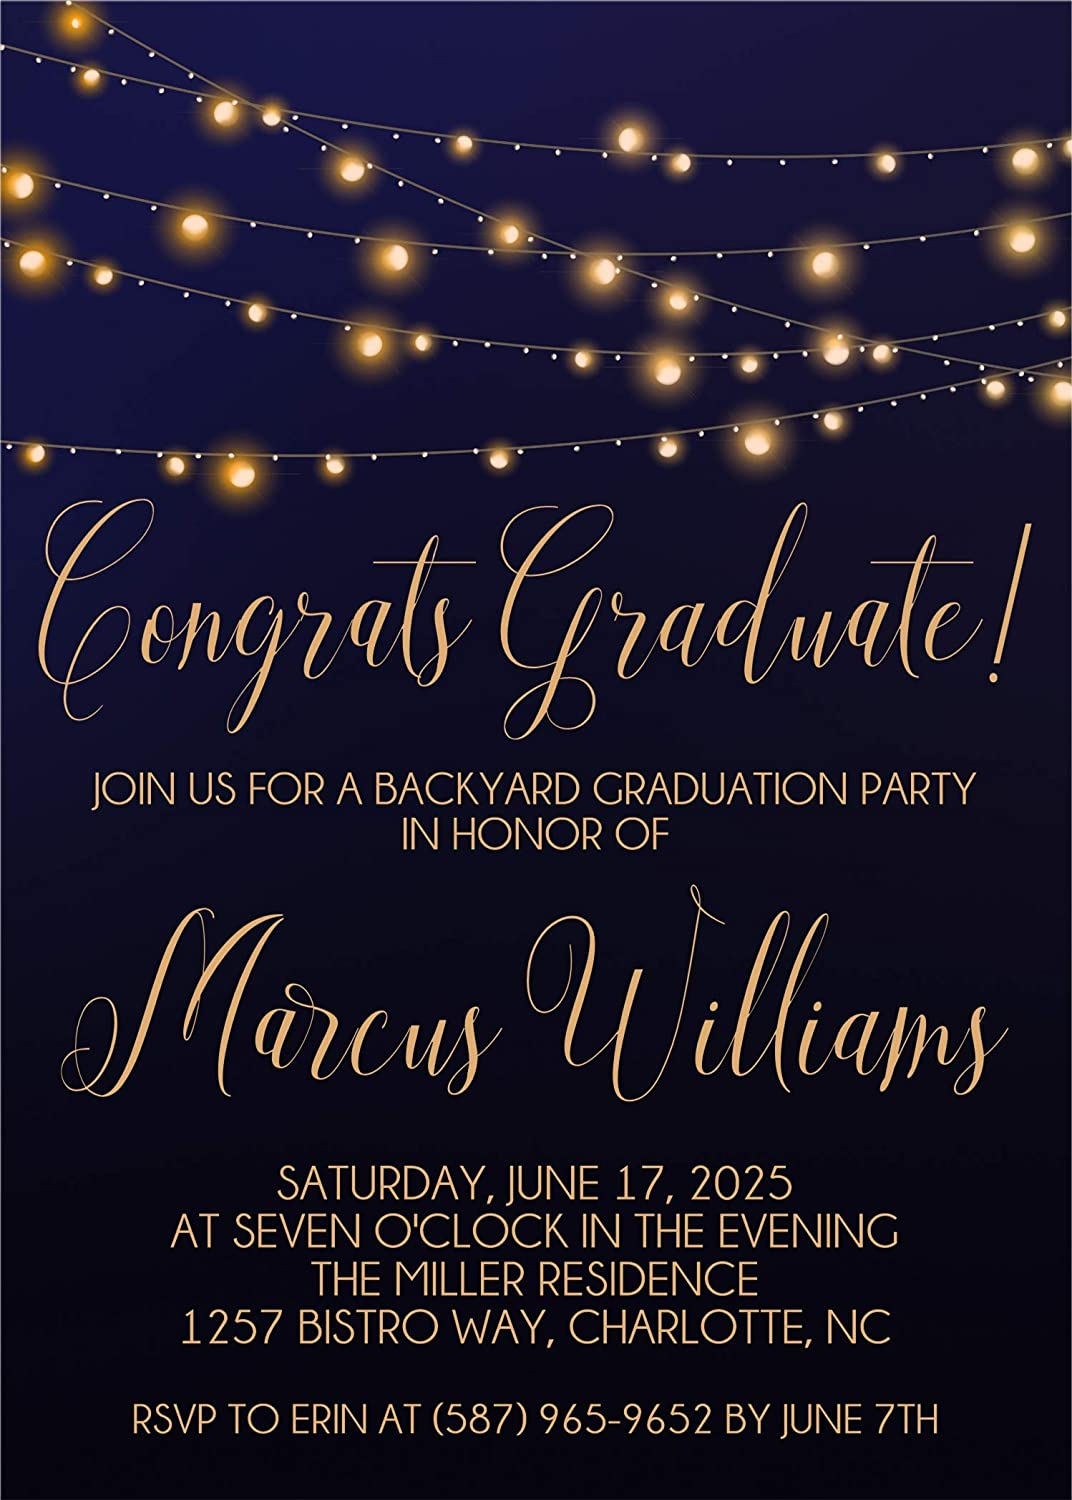 Backyard Graduation Party Invitations Gradu With Home Envelopes Online Recommendation limited product